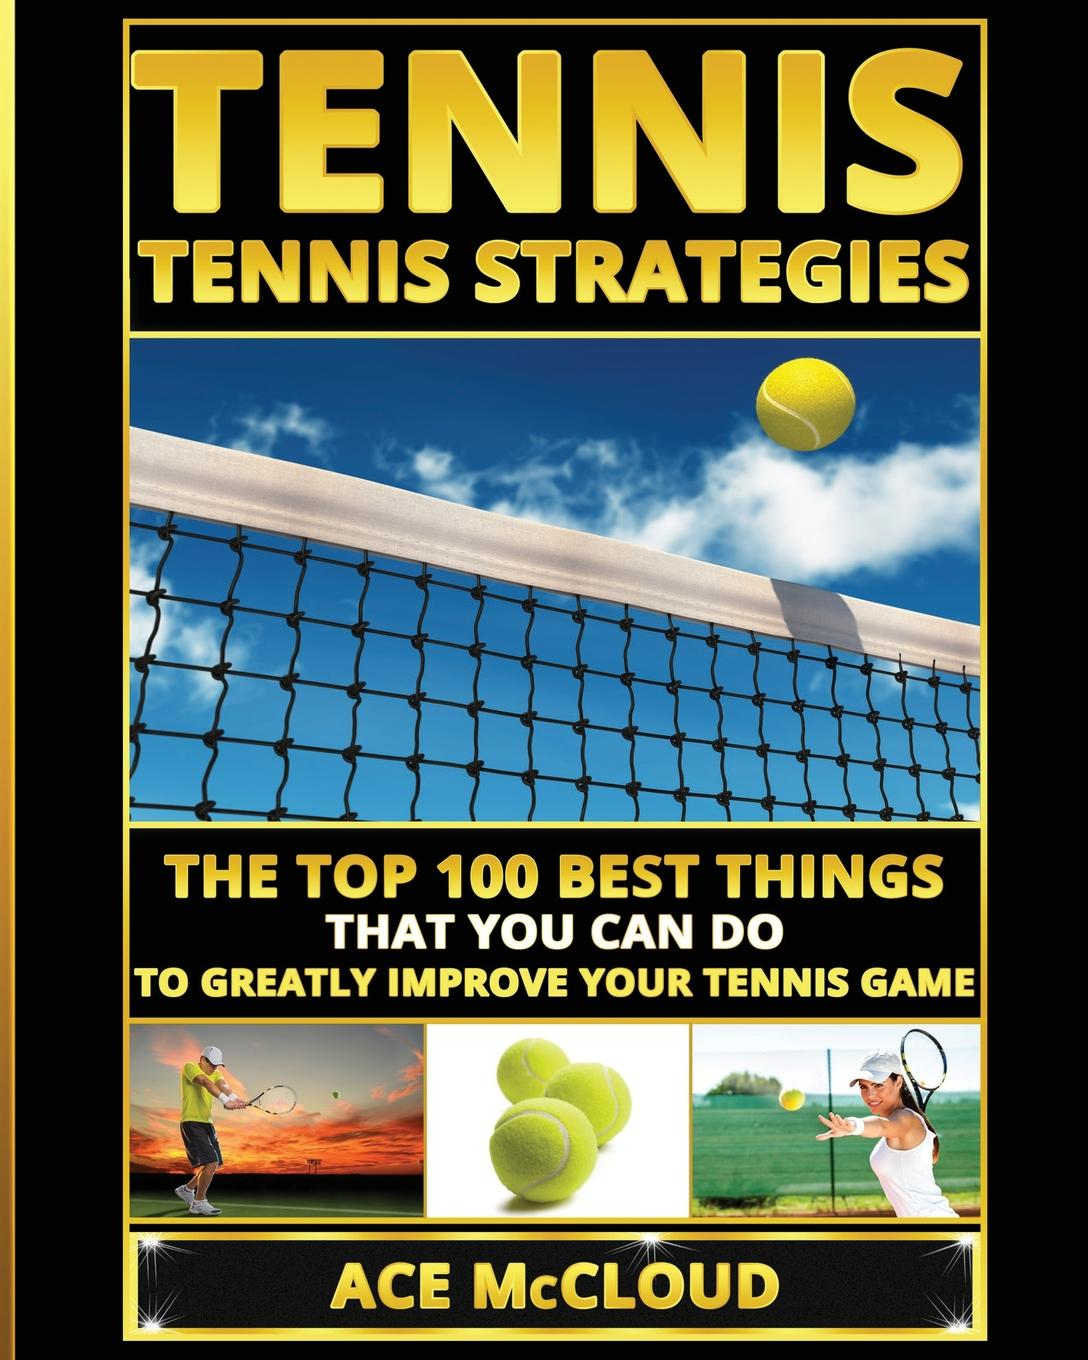 Ace McCloud Tennis. Tennis Strategies: The Top 100 Best Things That You Can Do To Greatly Improve Your Tennis Game